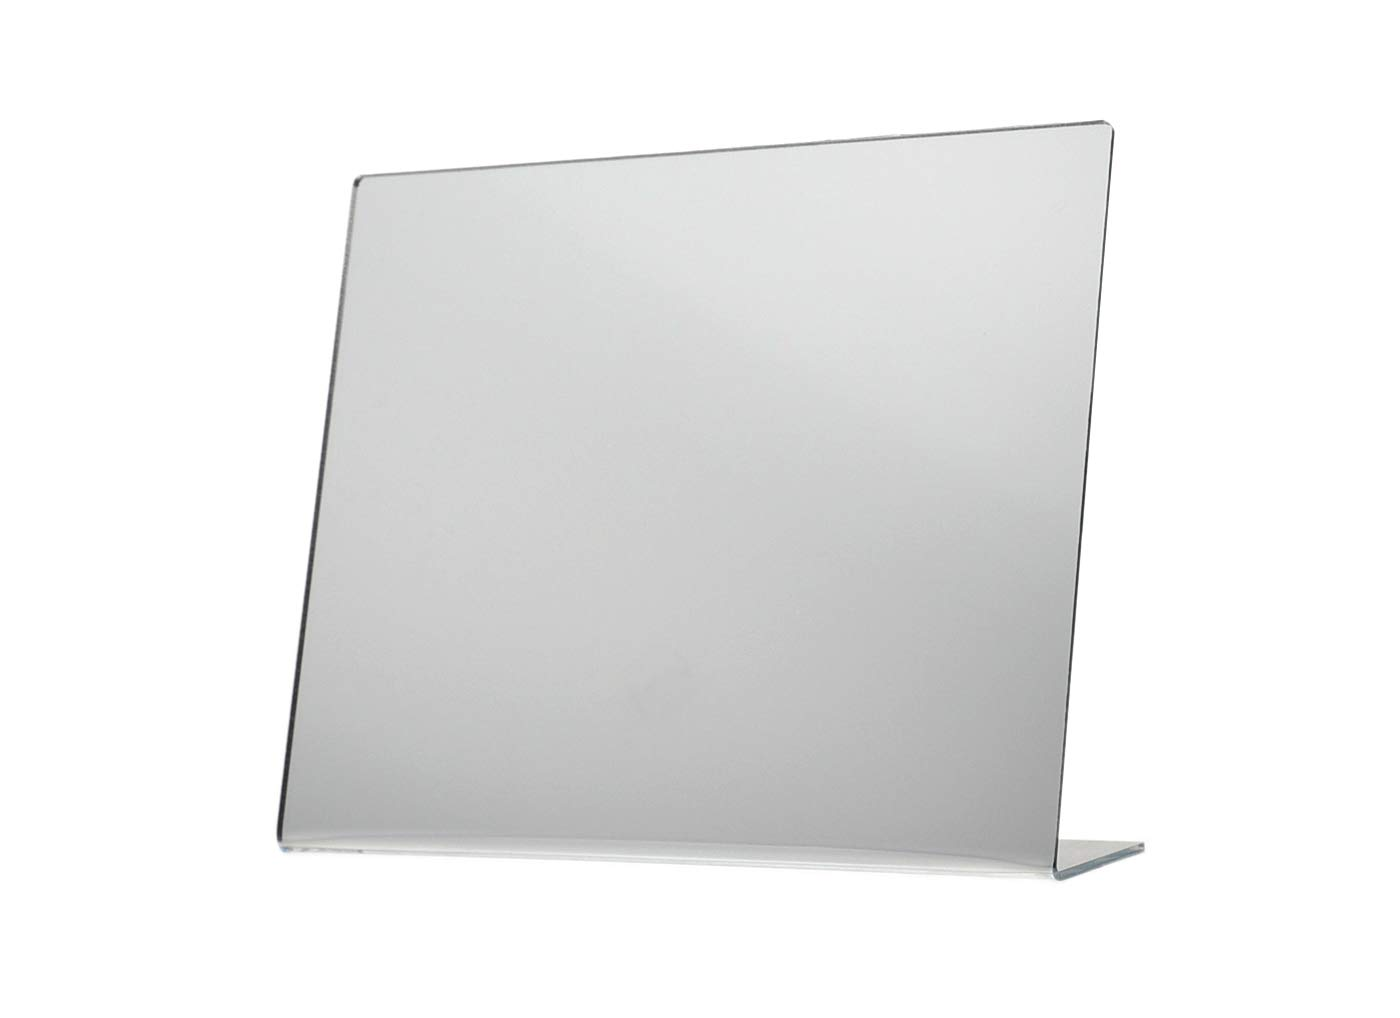 Marketing Holders Acrylic Mirror Slant Back Counter Top Speech Therapy Jewelry Makeup Mirror (24, 10''w x 8''h) by Marketing Holders (Image #5)